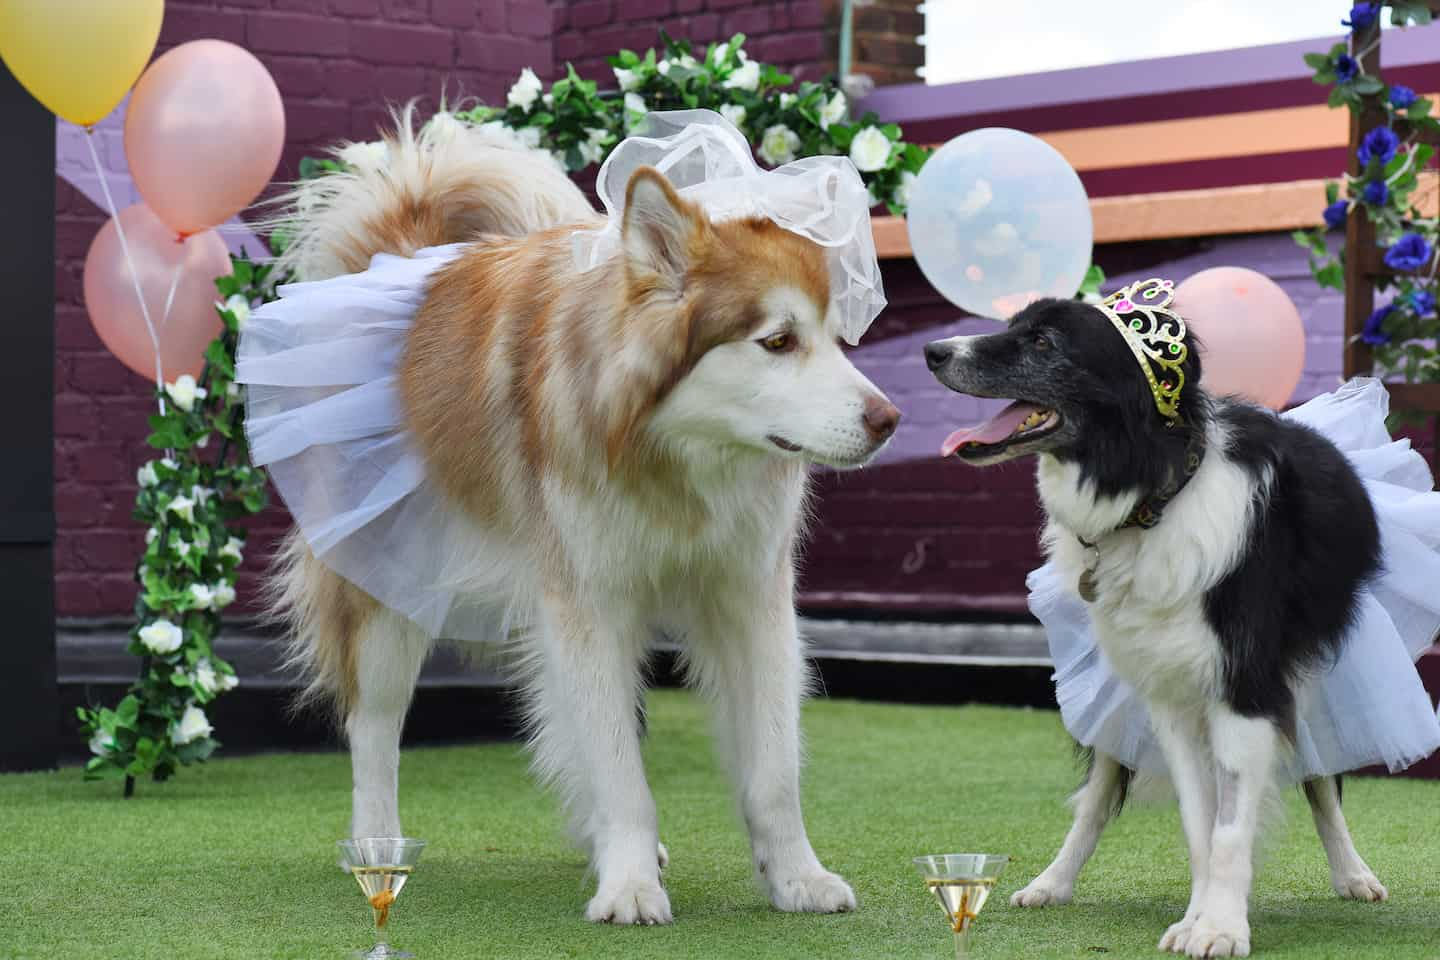 London Dog Wedding At The Rooftop Film Club Wooftop Wedding Service 2